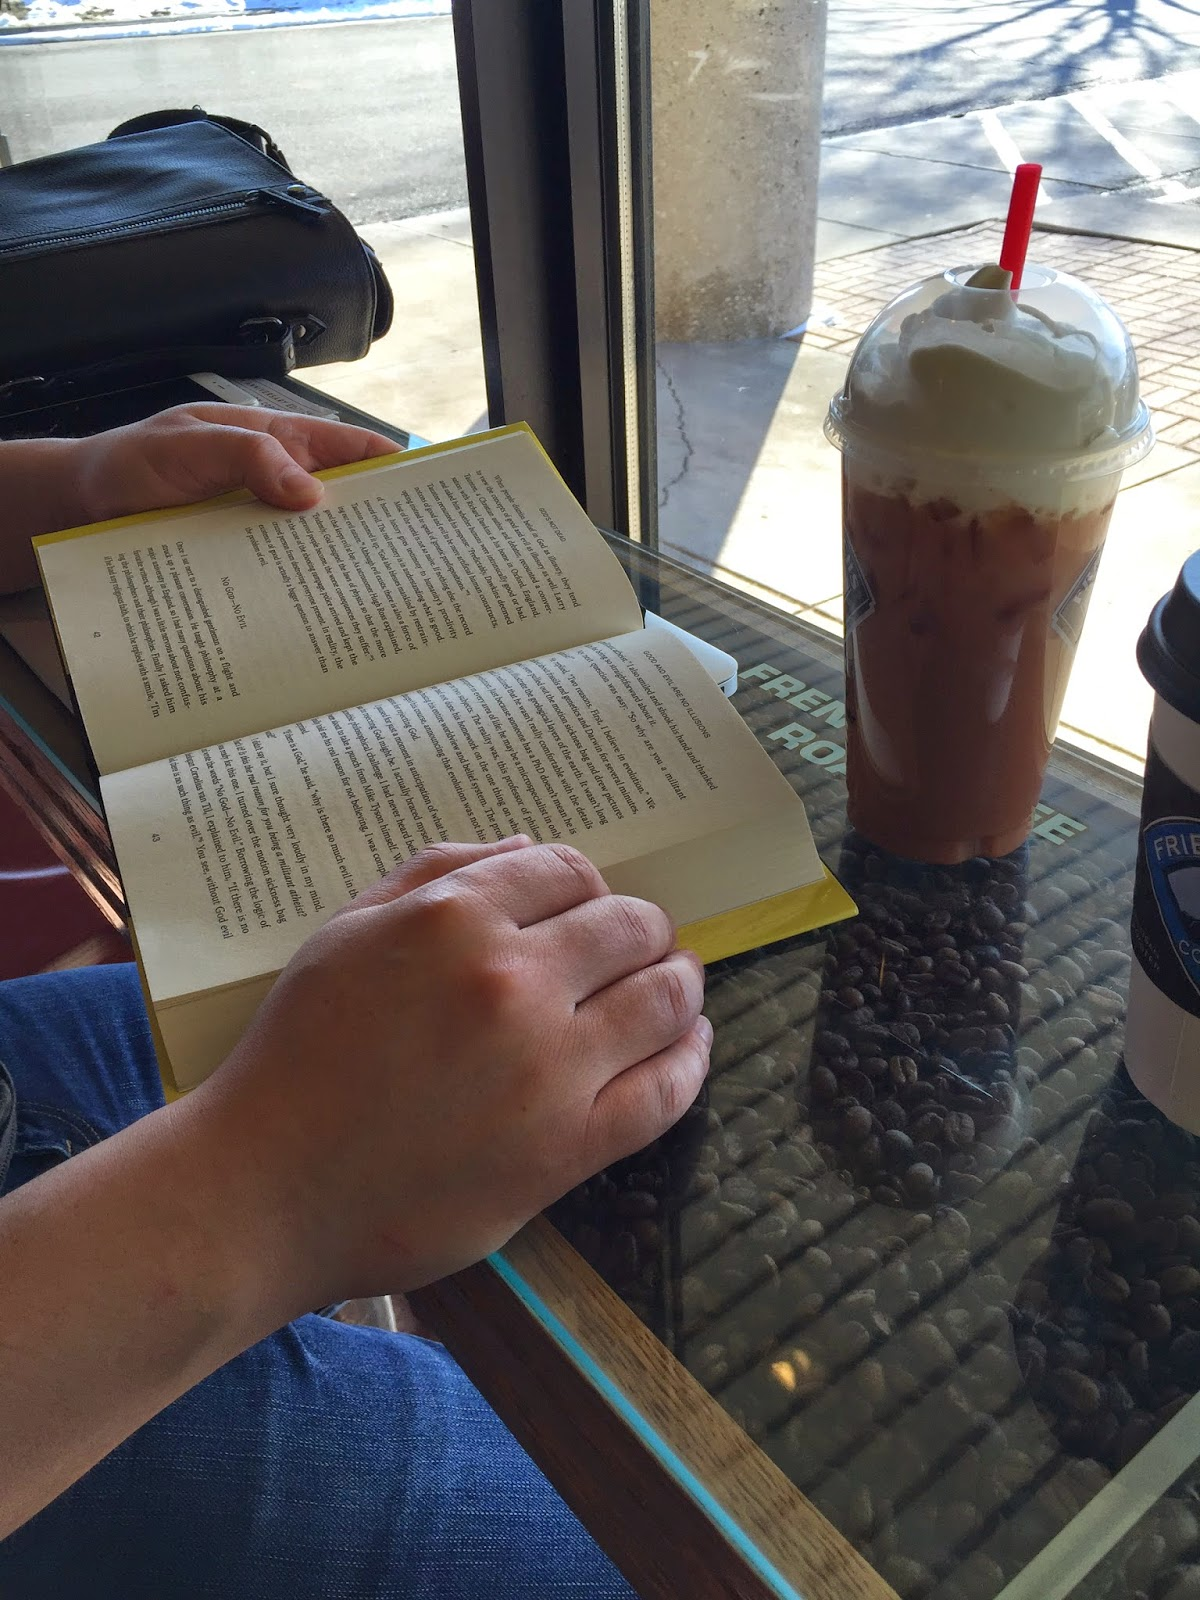 reading books together at the coffeehouse